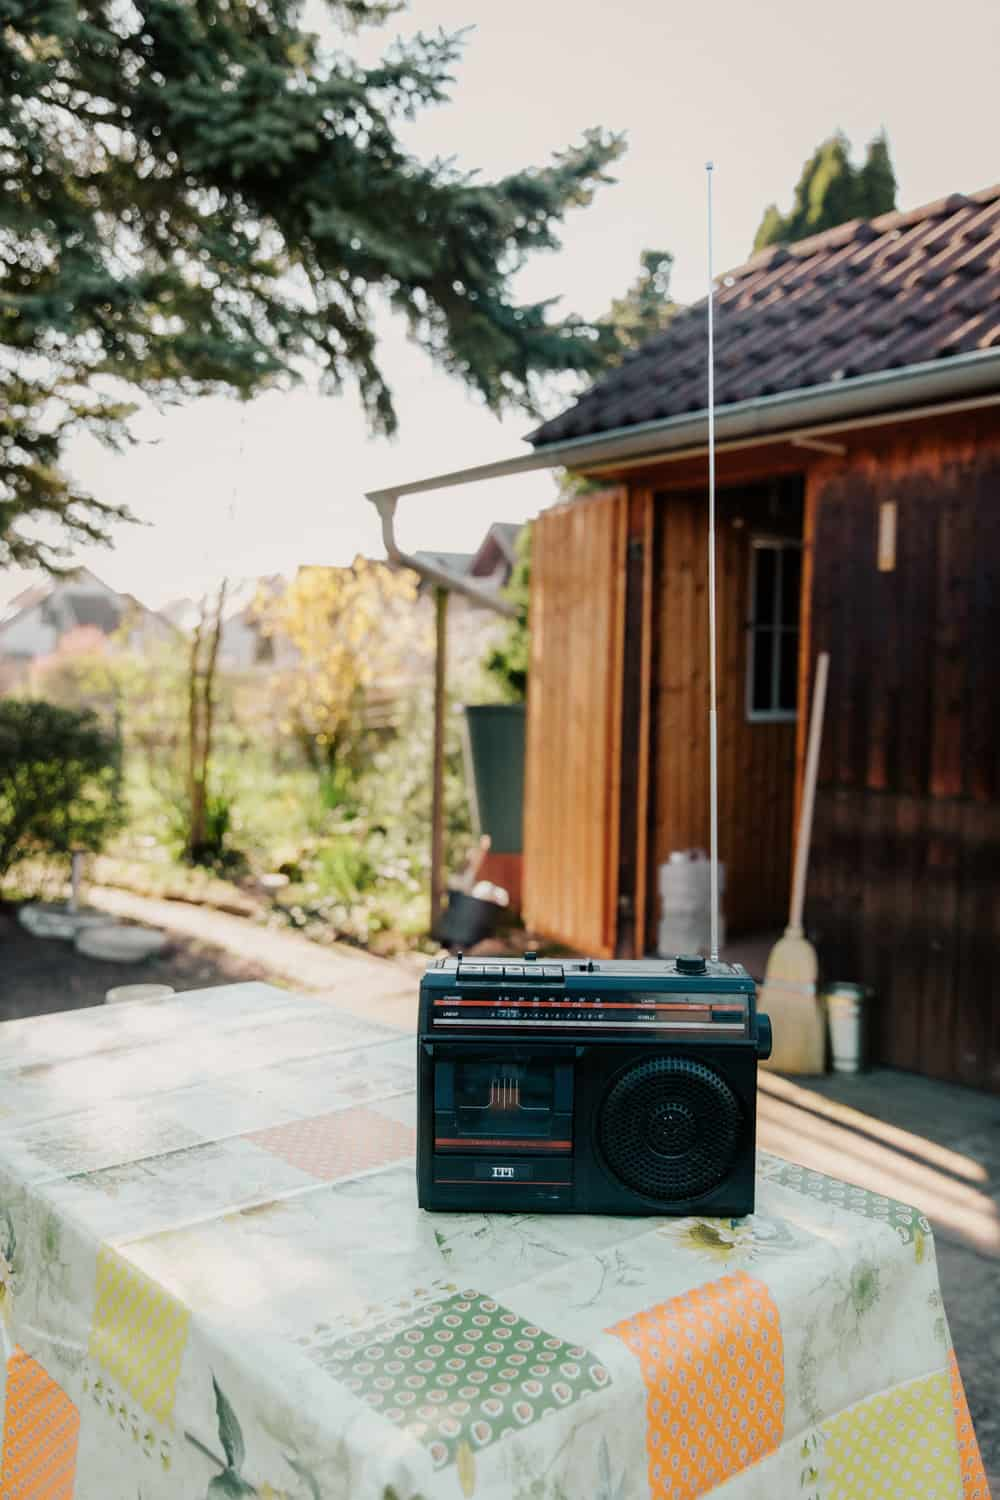 Old cassette and radio player on table outside.